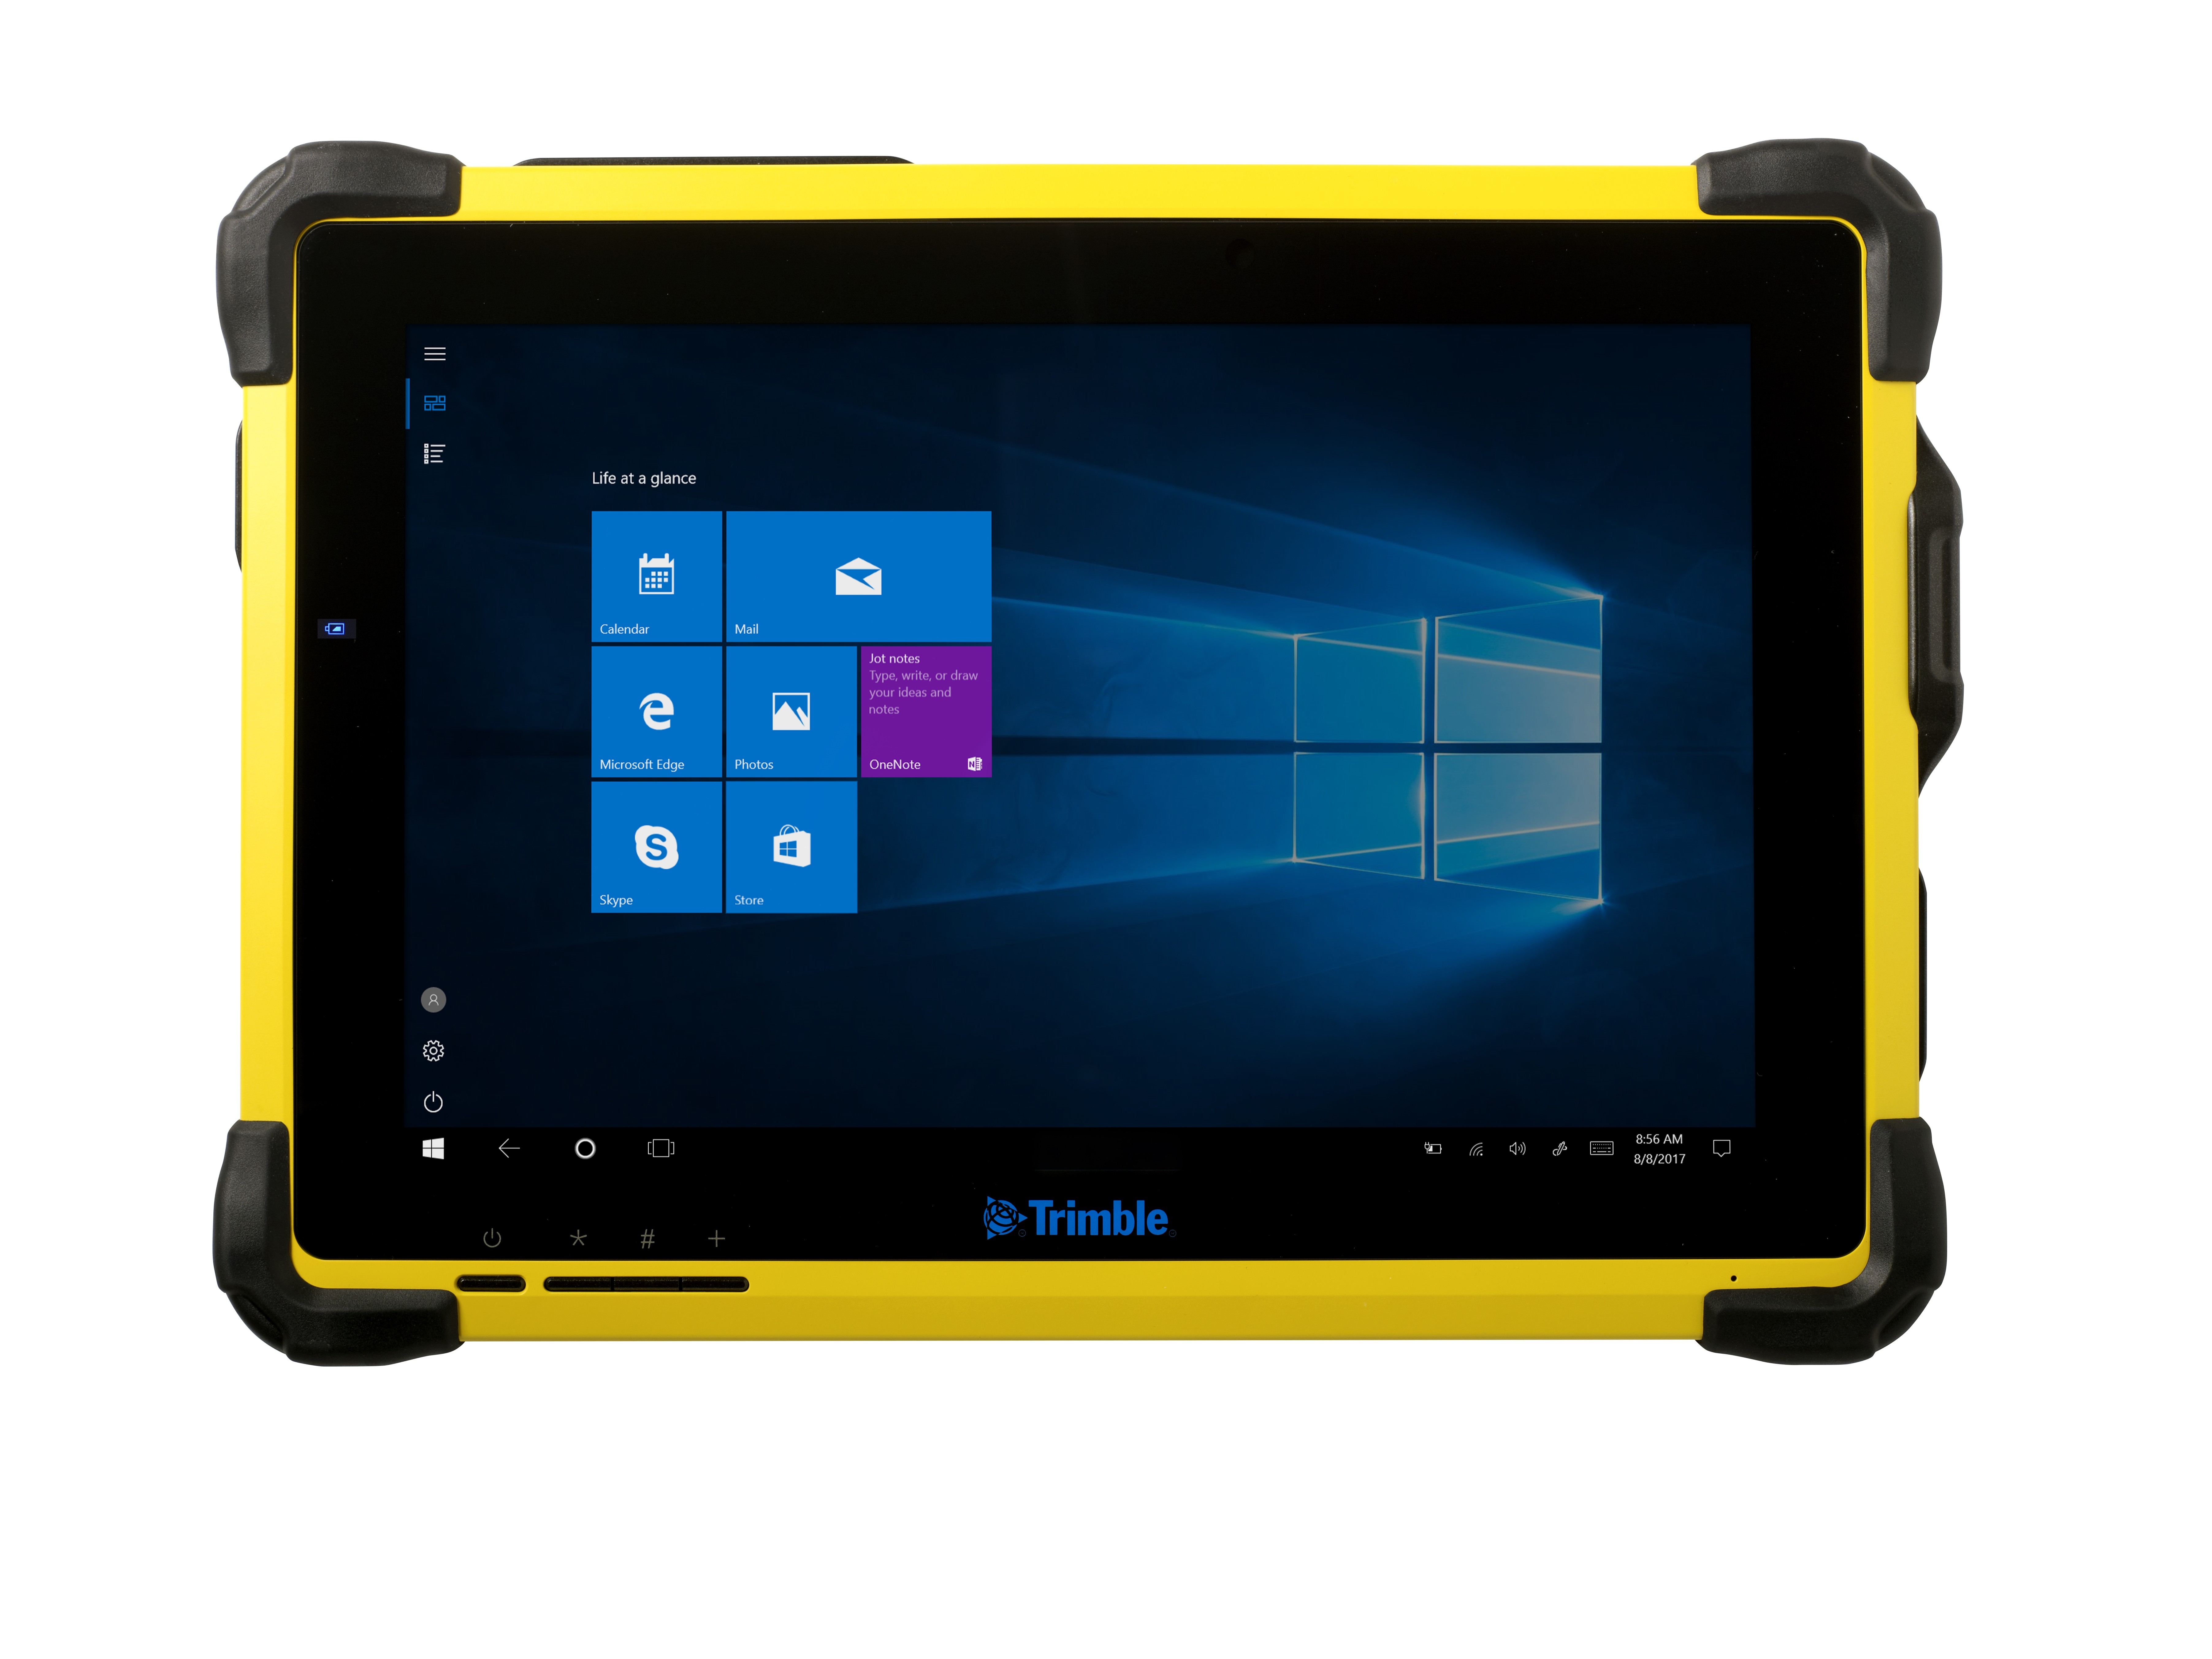 http://zoneegypt.com/images/products/product-1520252897_Trimble T10_Front_Homescreen_72453.jpg